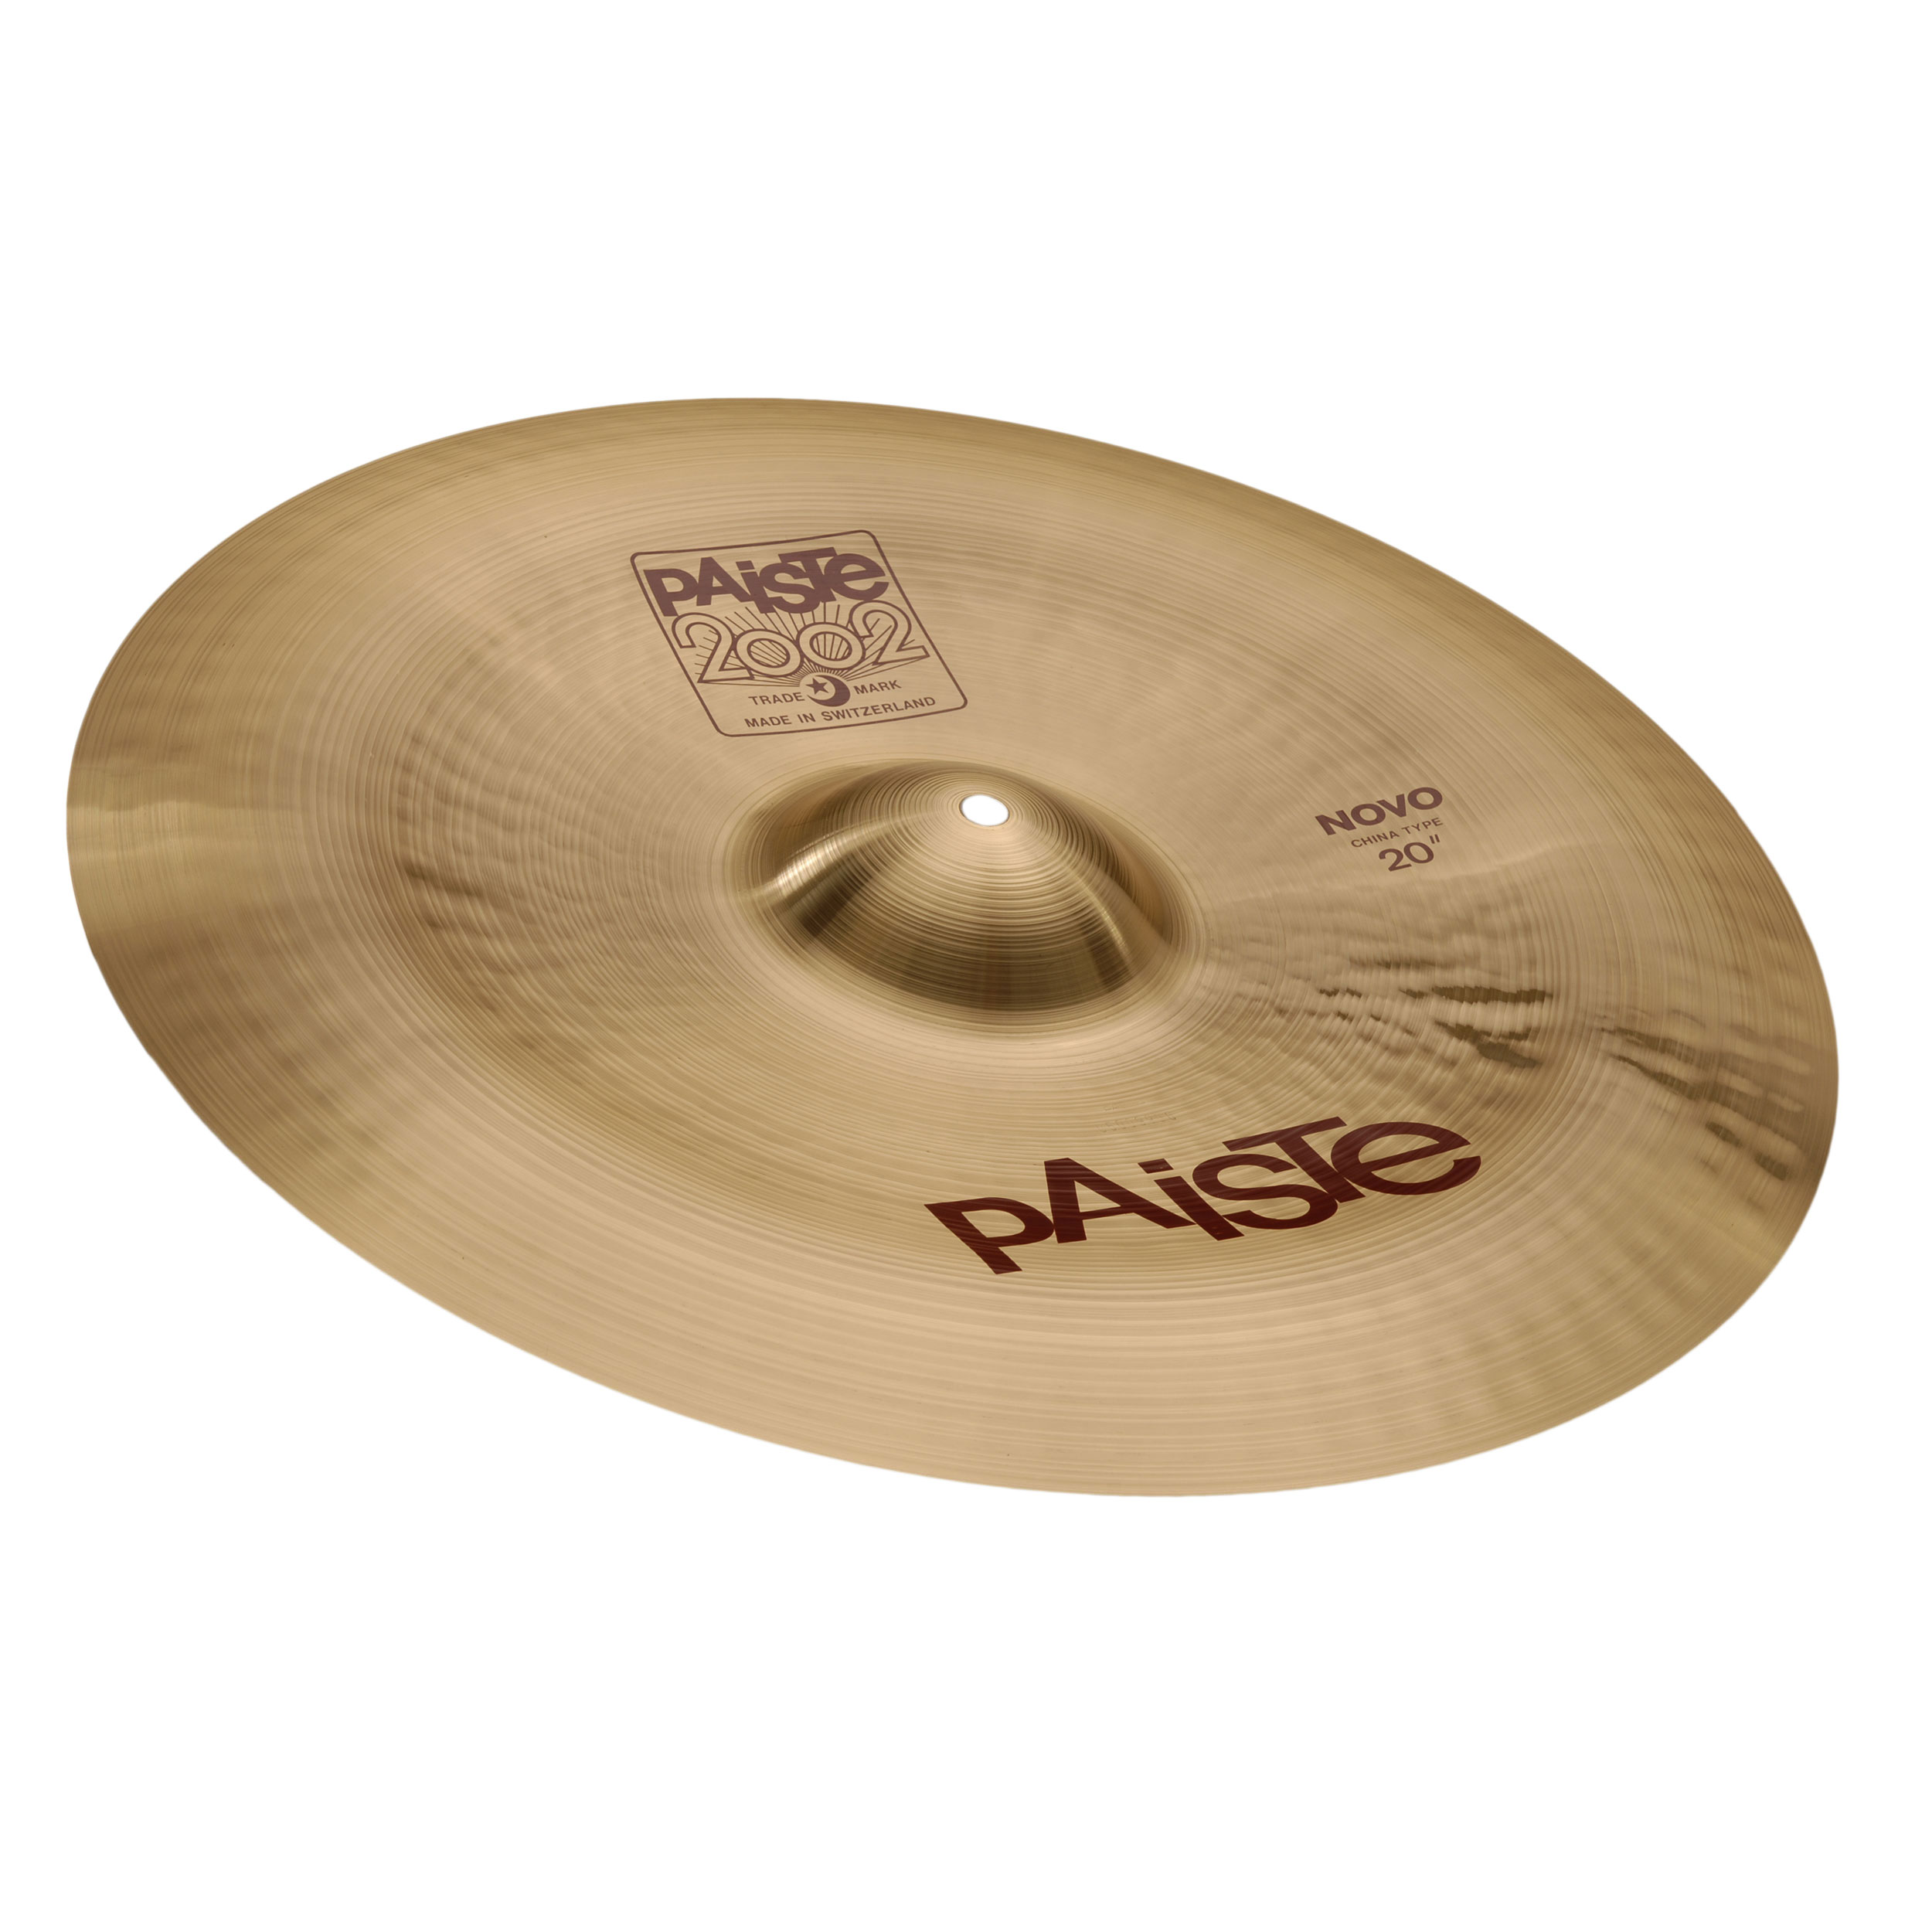 "Paiste 20"" 2002 Novo China Cymbal"